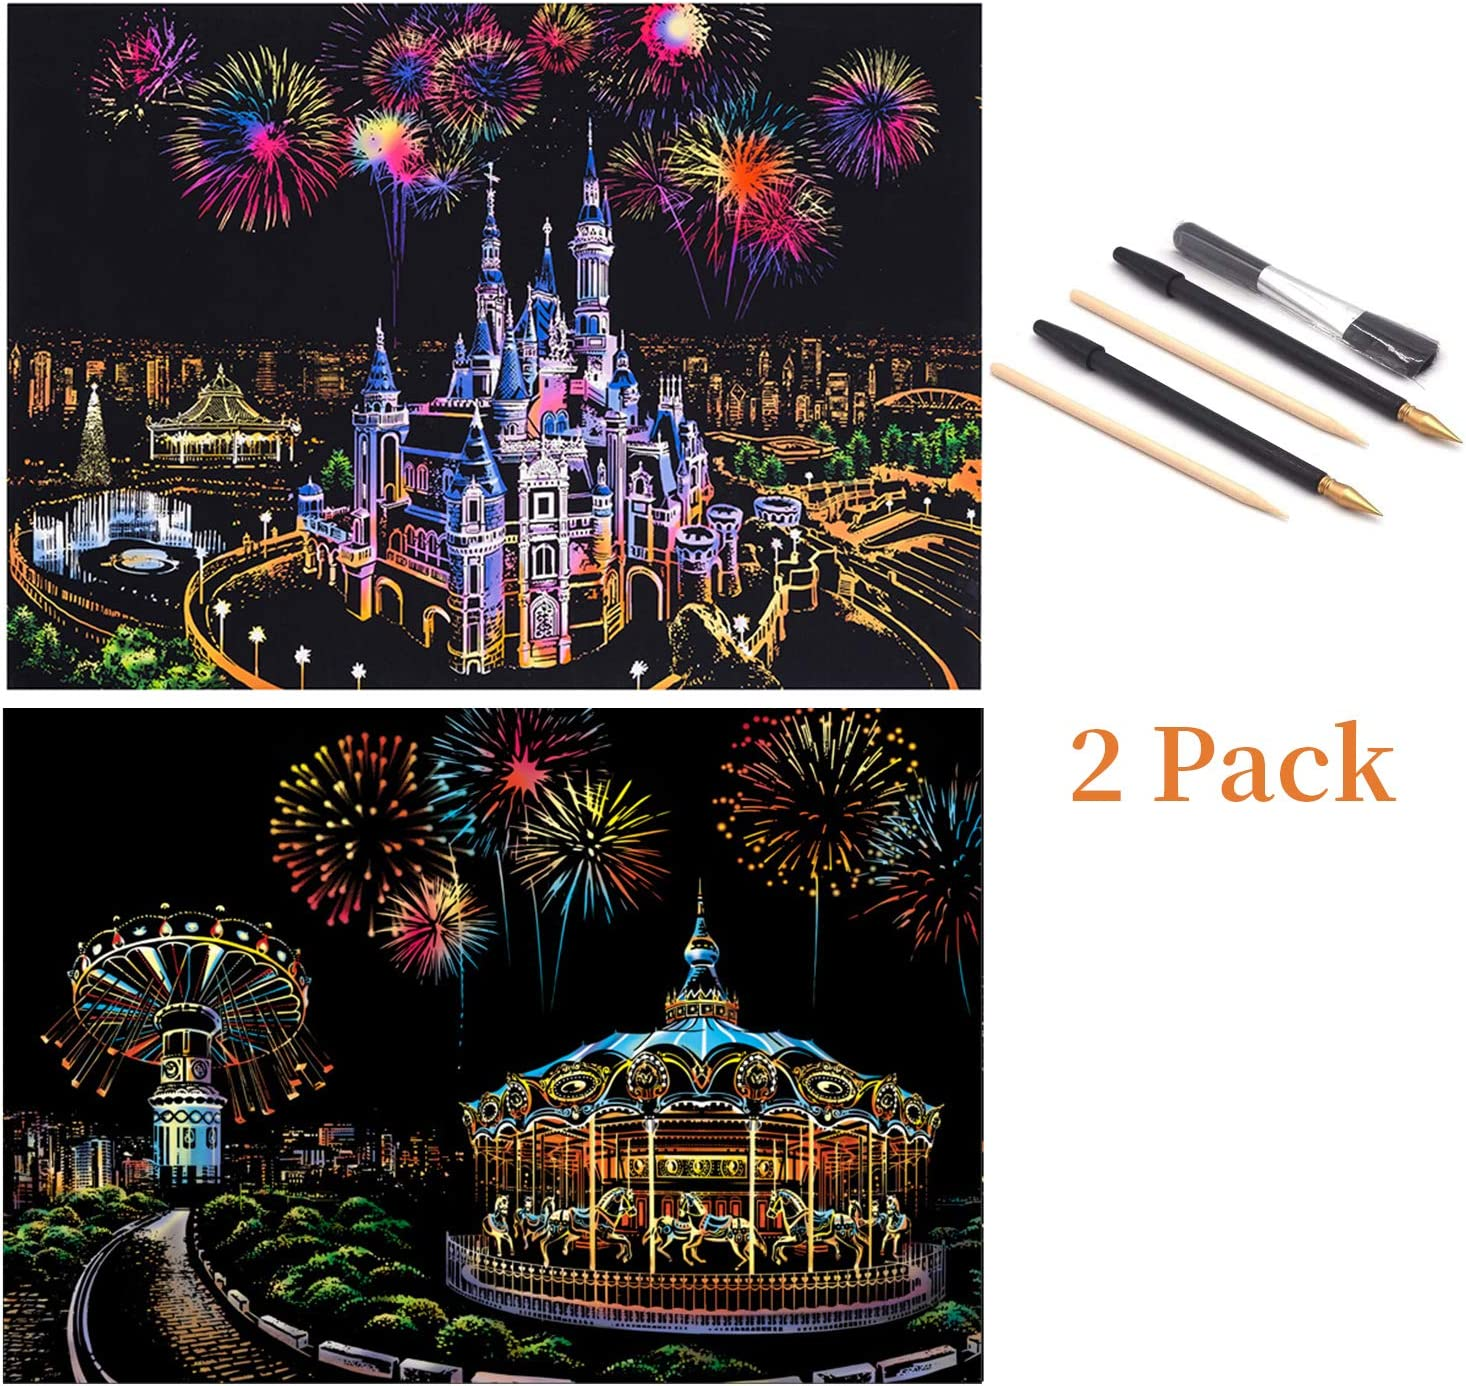 4 Pack Scratch Painting Set with Scratch Paper Scratch Drawing Board Blank Board for Adults and Kids DIY Art Craft 16 X 11.2 Inches Scenery